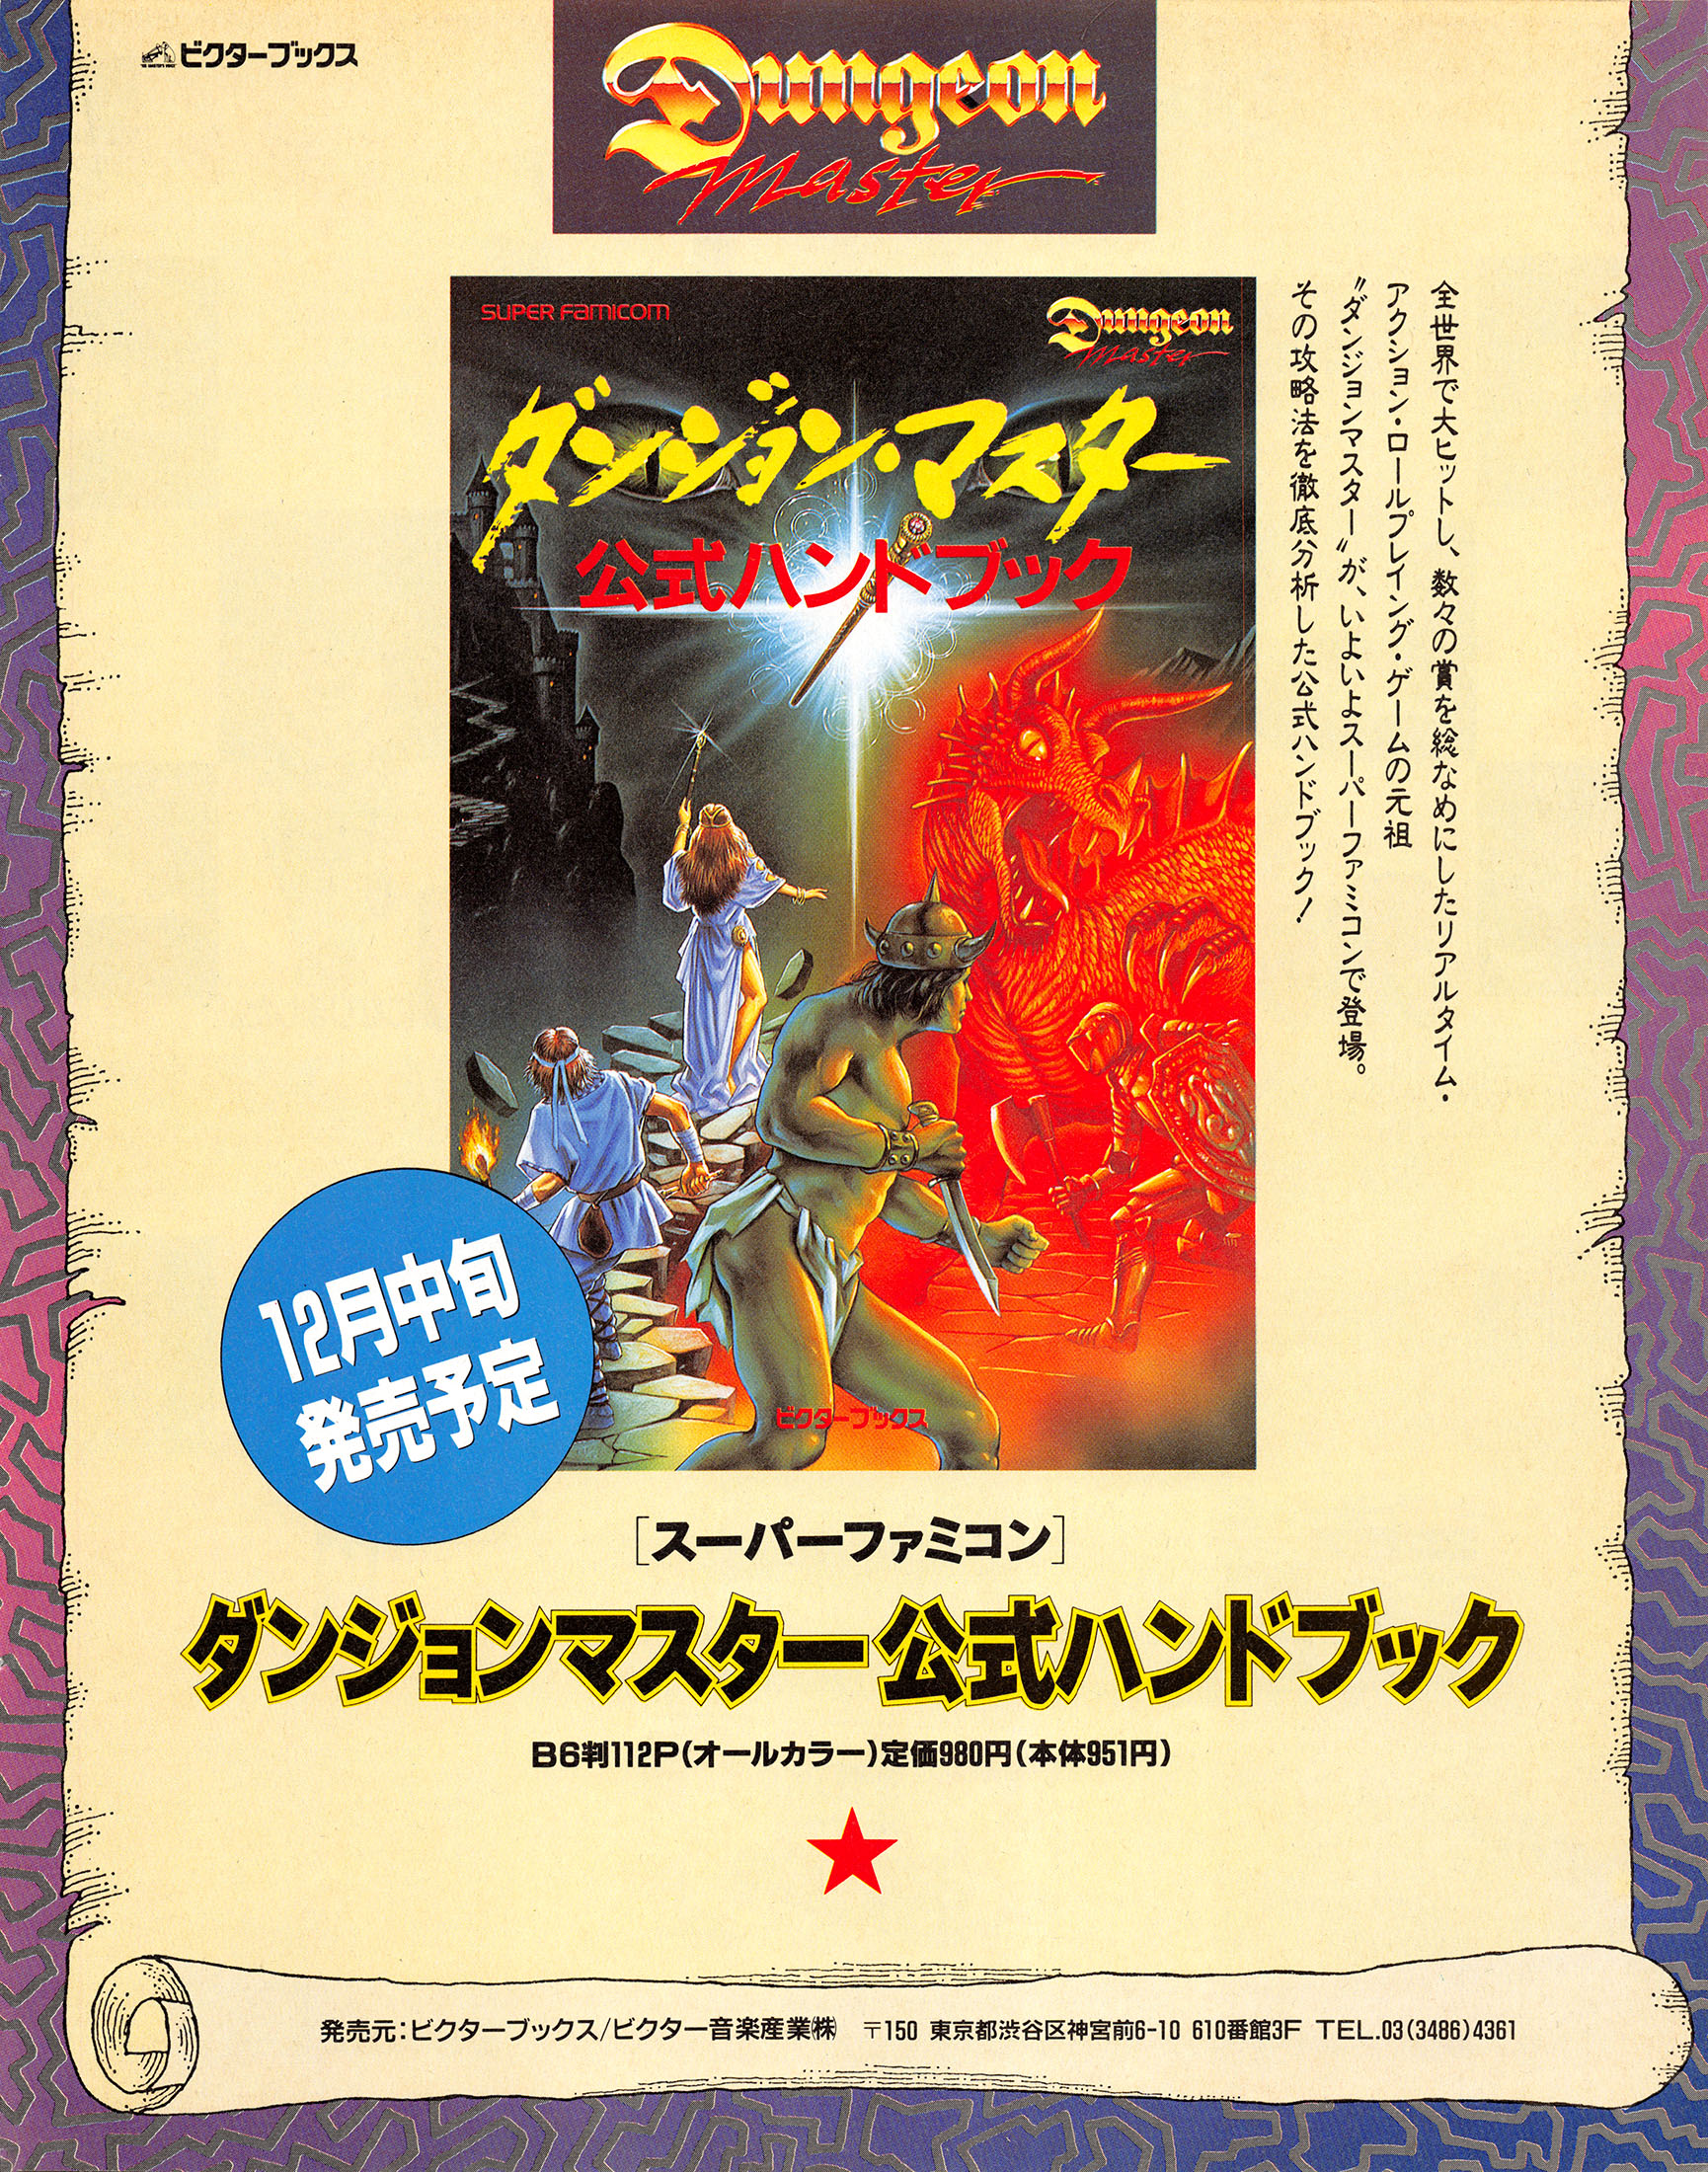 Dungeon Master for Super Famicom Advertisement published in Japanese magazine 'Famitsu', Issue #158 28 December 1991, Page 121